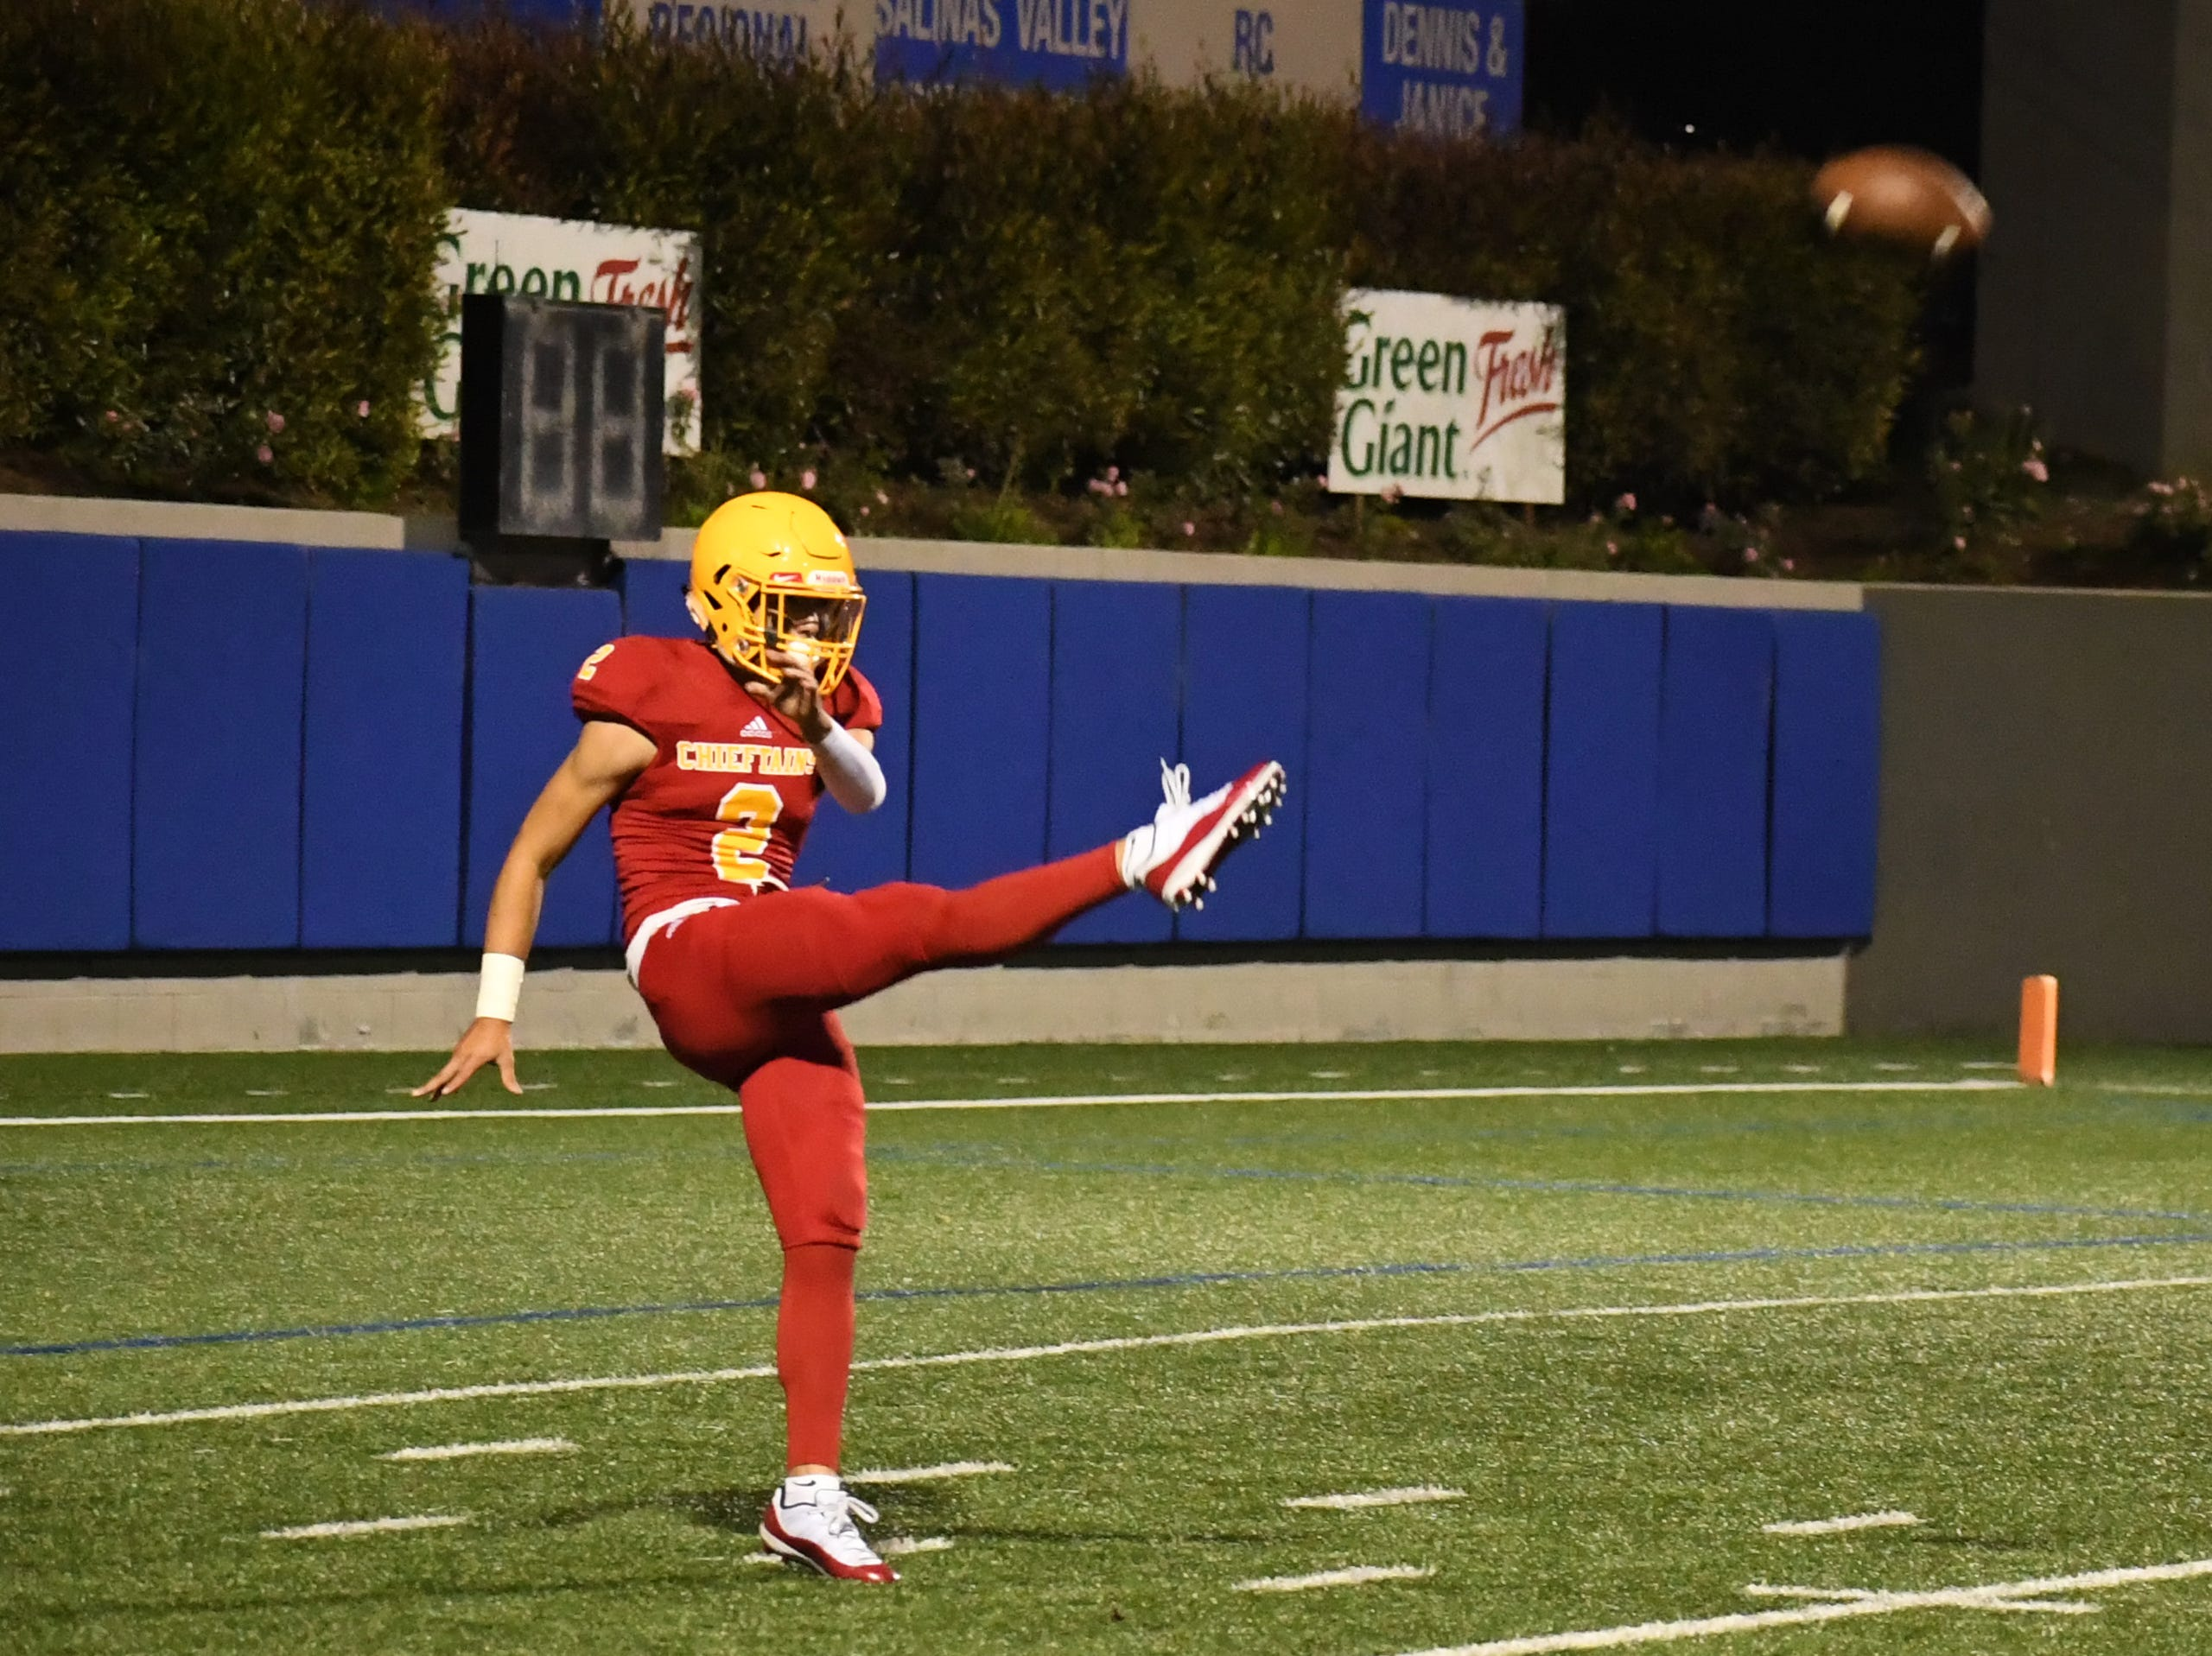 Palma senior Matteo Martinez (2) boots a punt that ended up going over 70 yards.